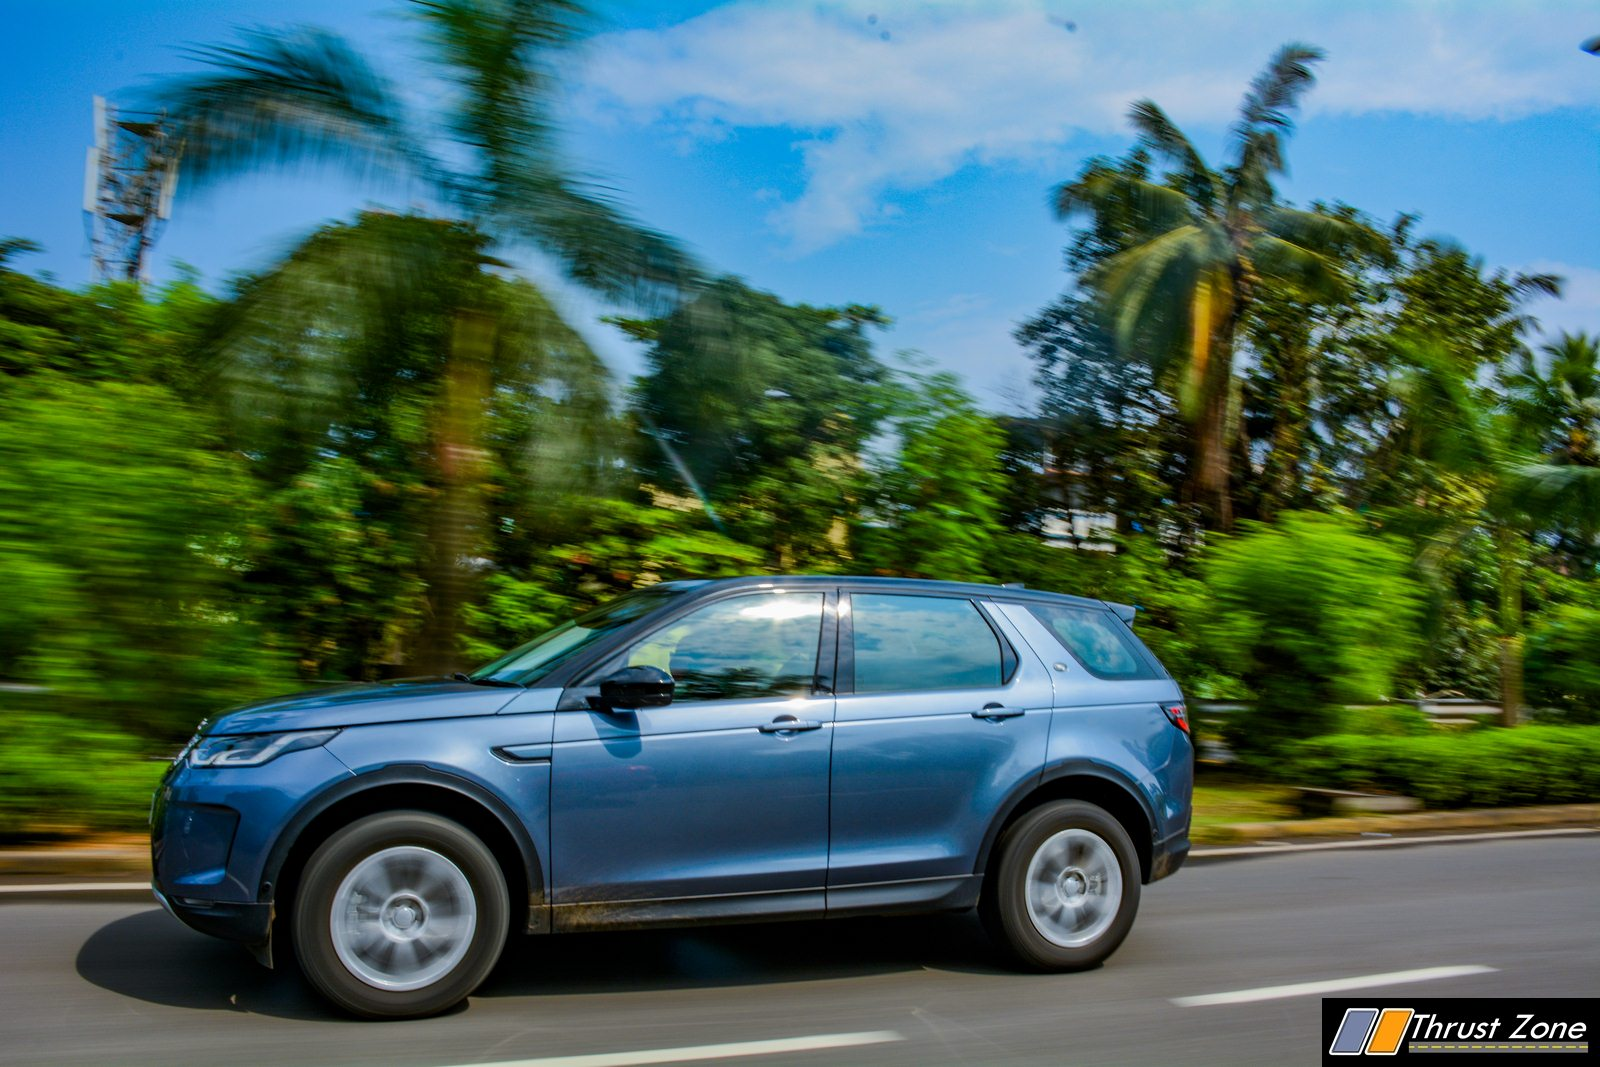 2020-Land-Rover-Discovery-Diesel-India-Review-20